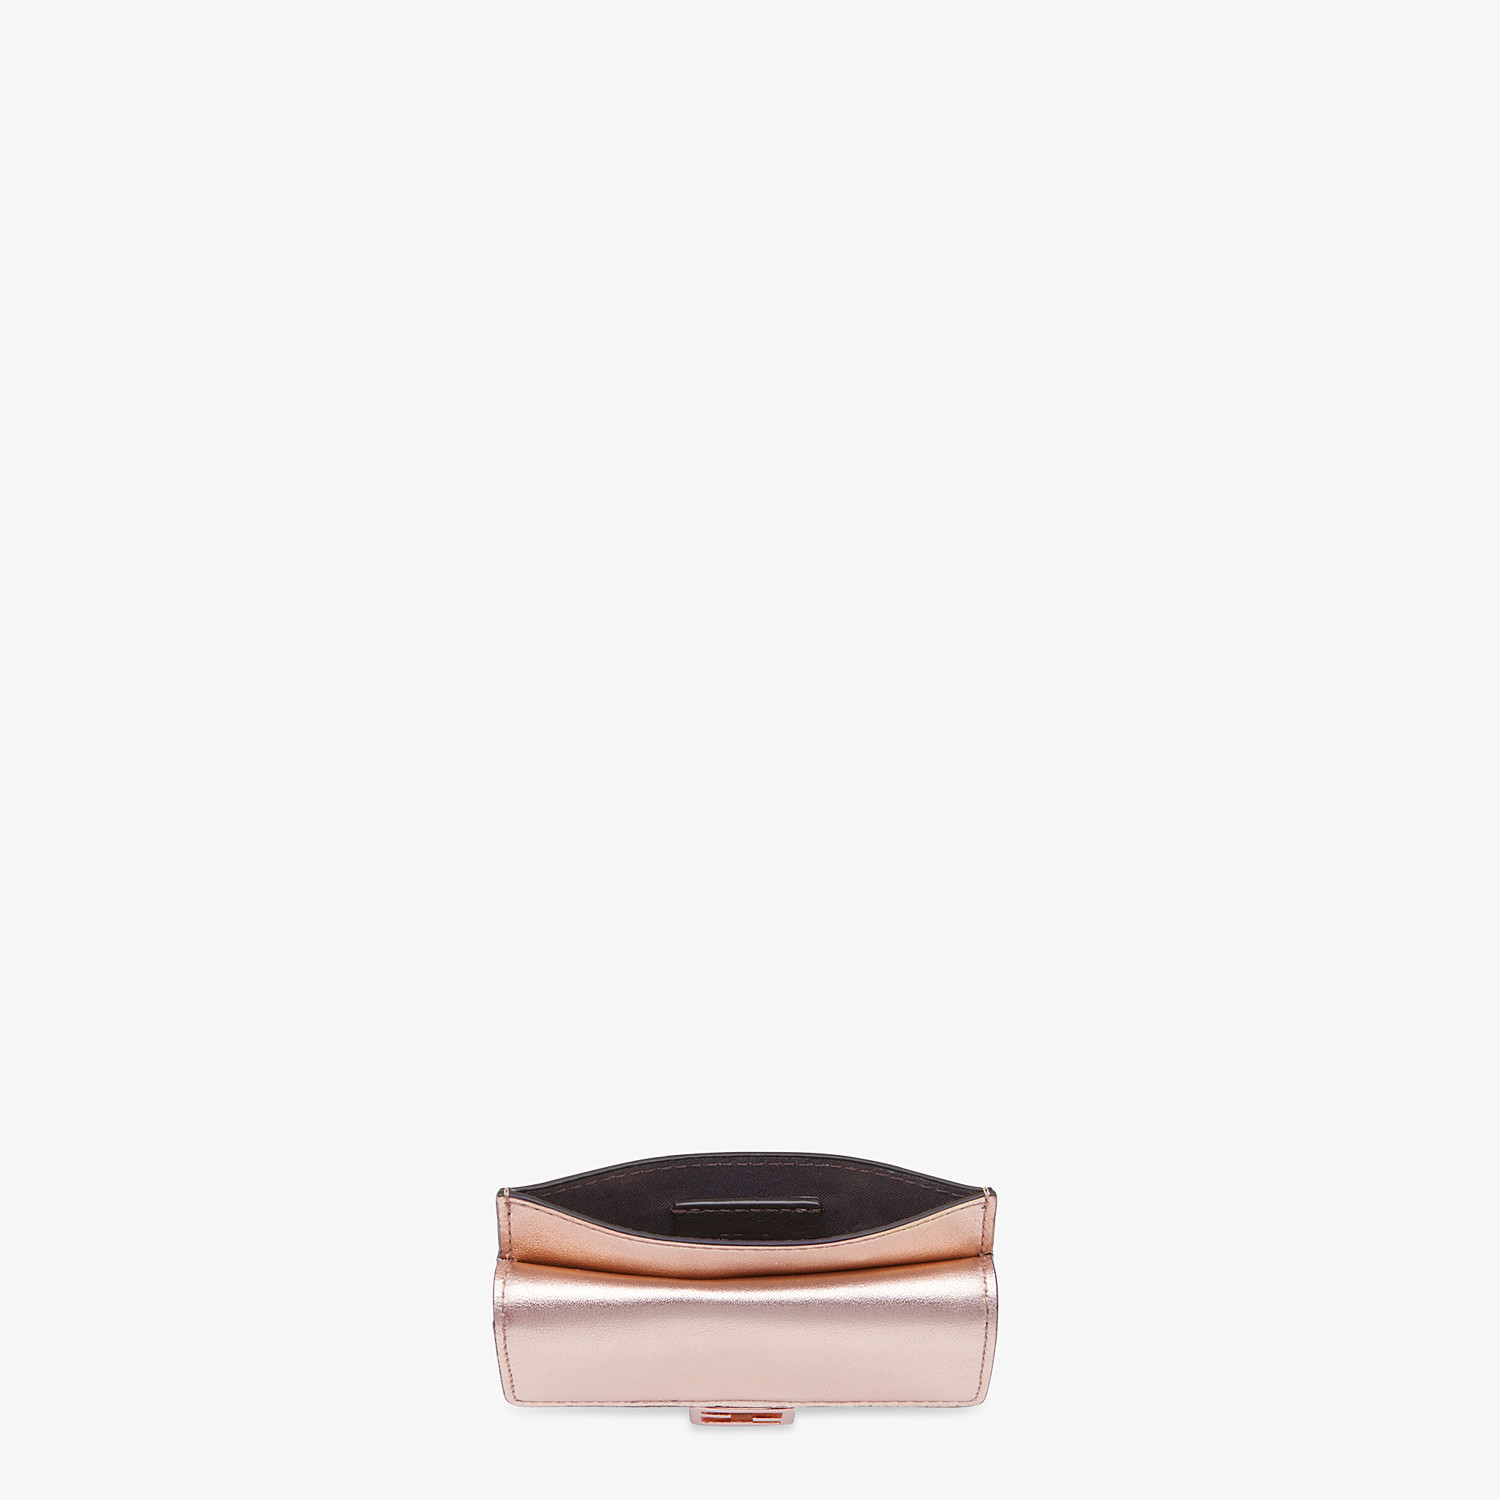 FENDI CARD HOLDER - Pink leather cardholder - view 4 detail